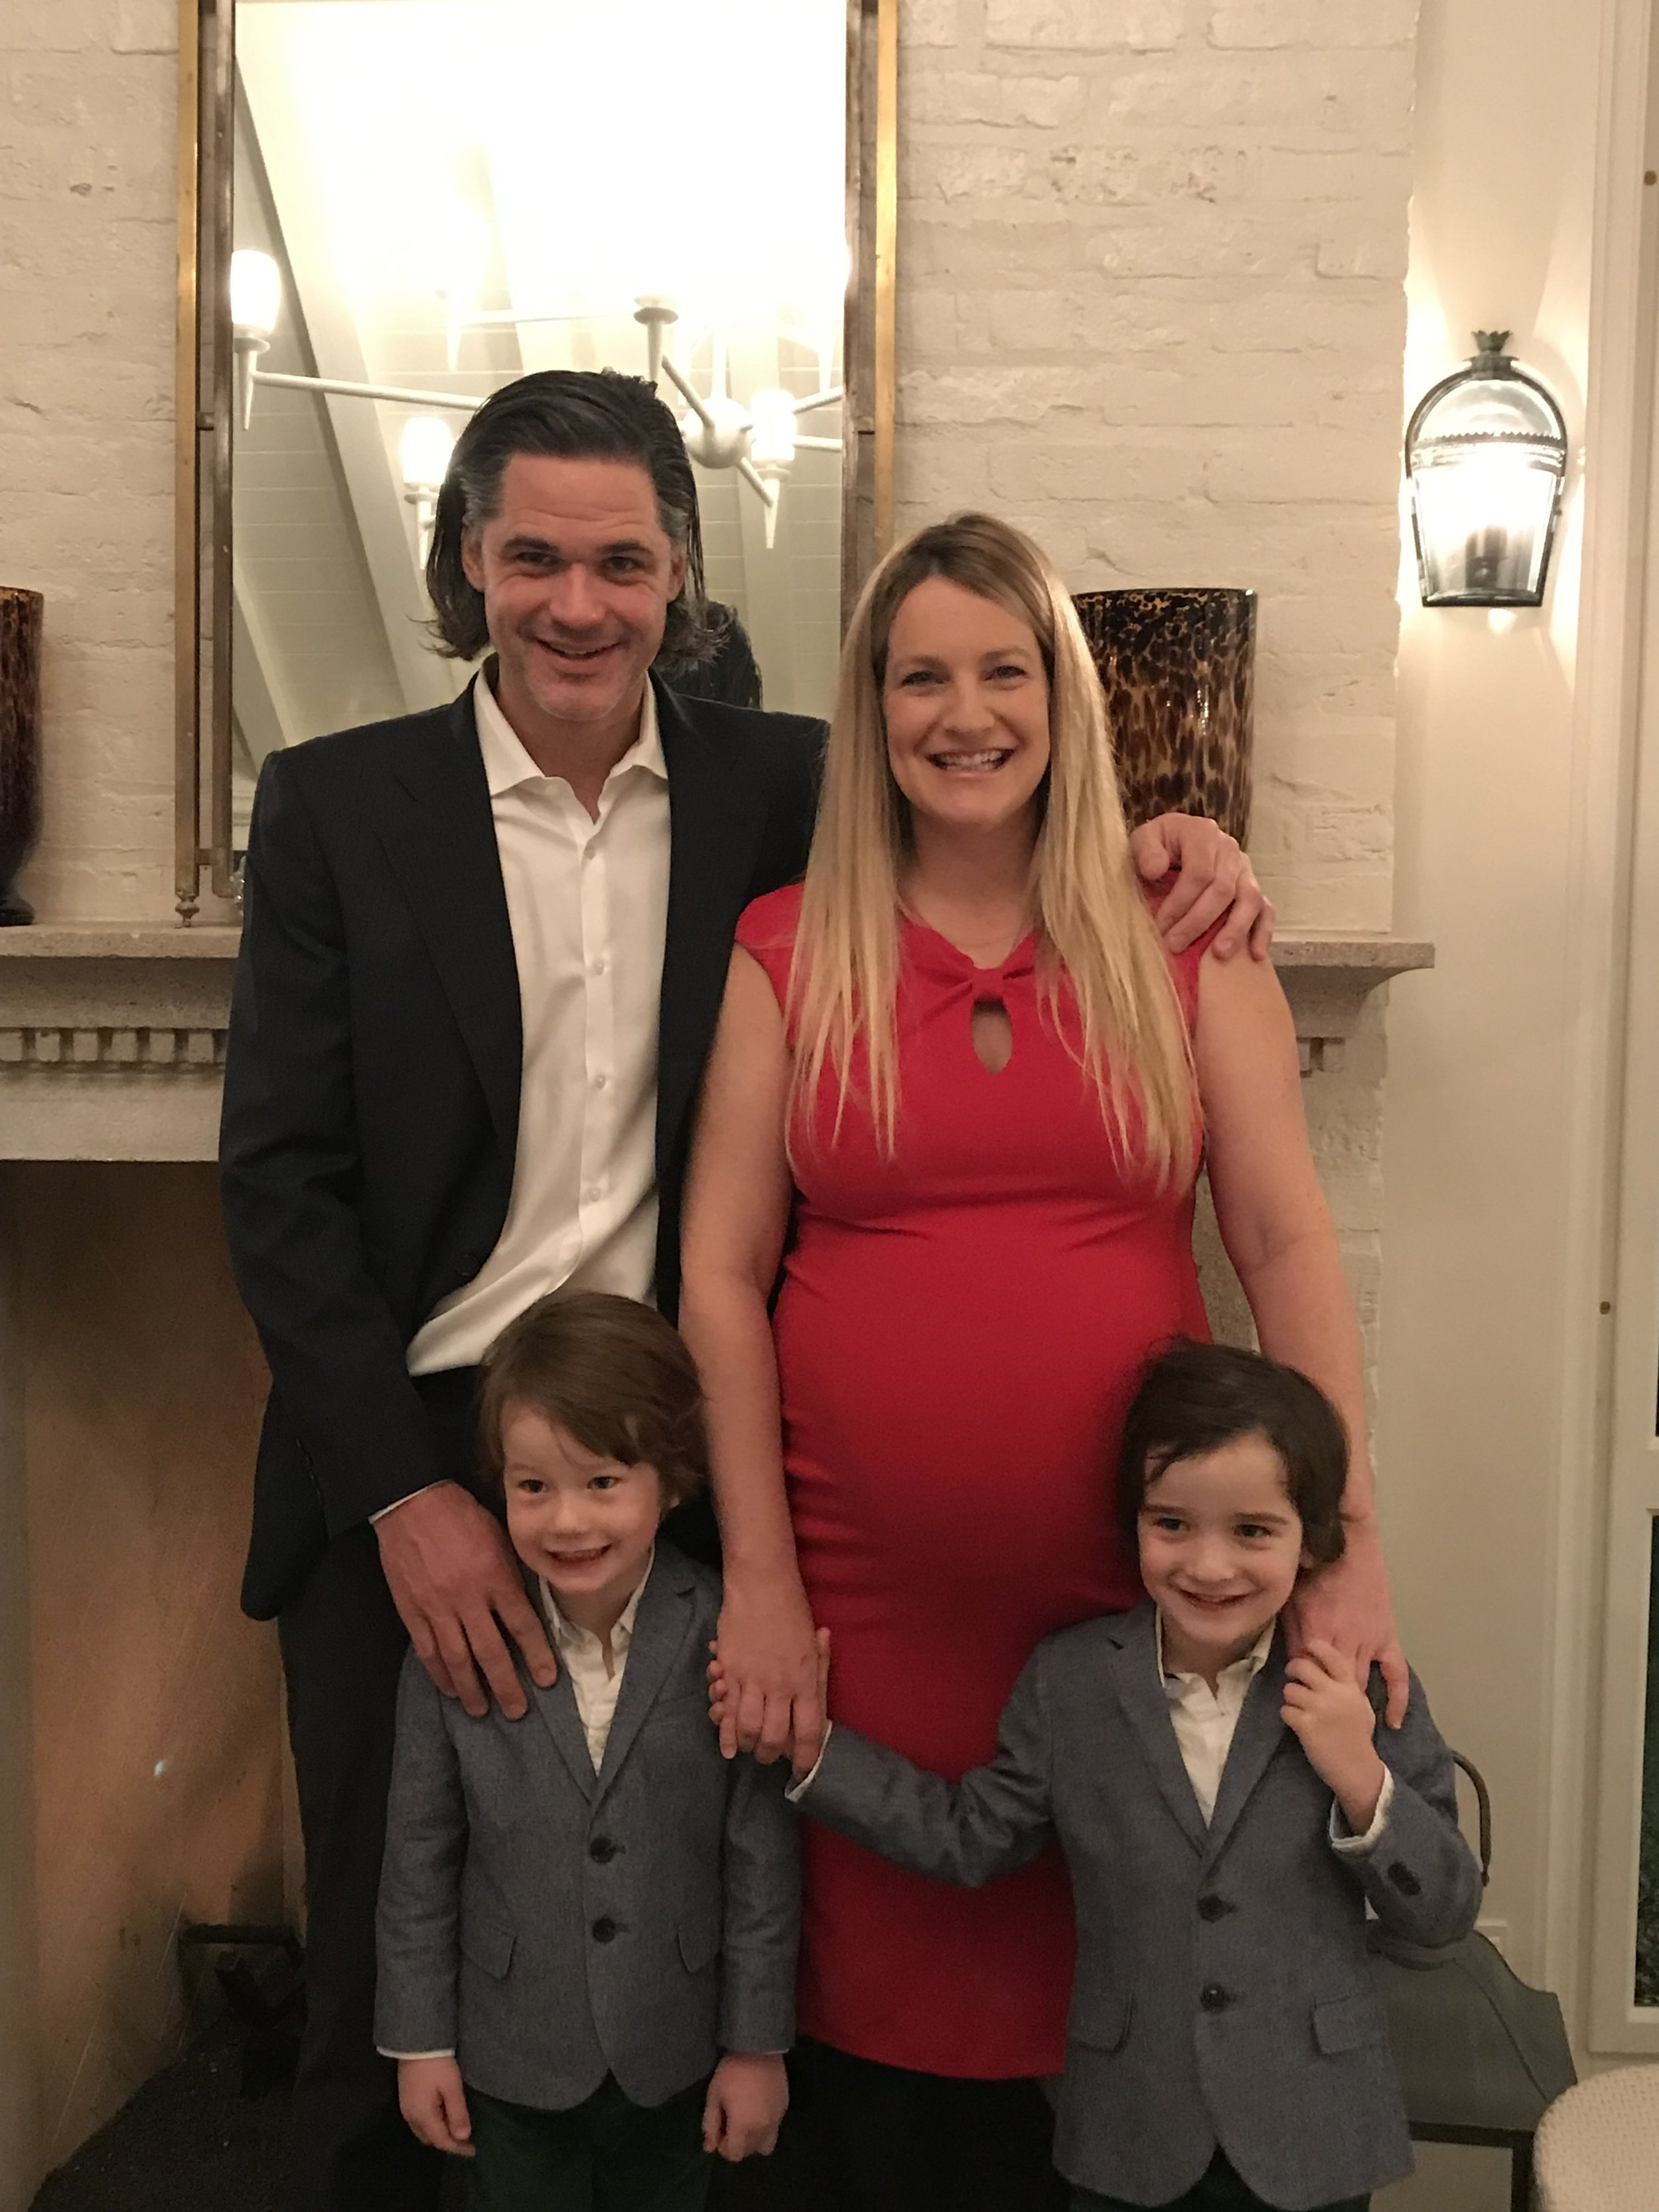 Ben, his wife Caroline, their boys and the baby on the way who arrived in January 2019.